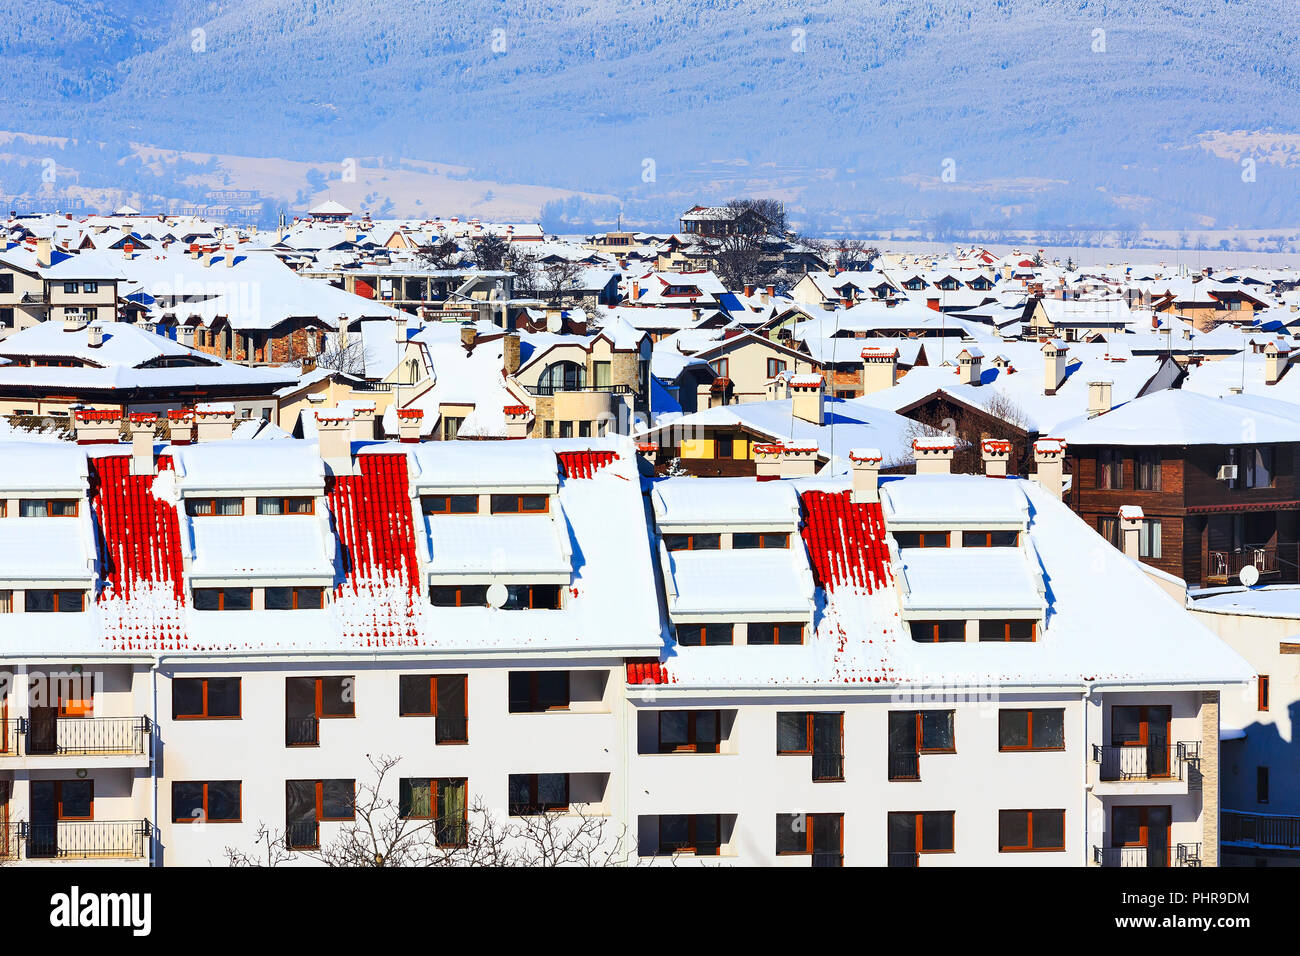 Houses with snow roofs panorama of bulgarian ski resort Bansko, Bulgaria - Stock Image